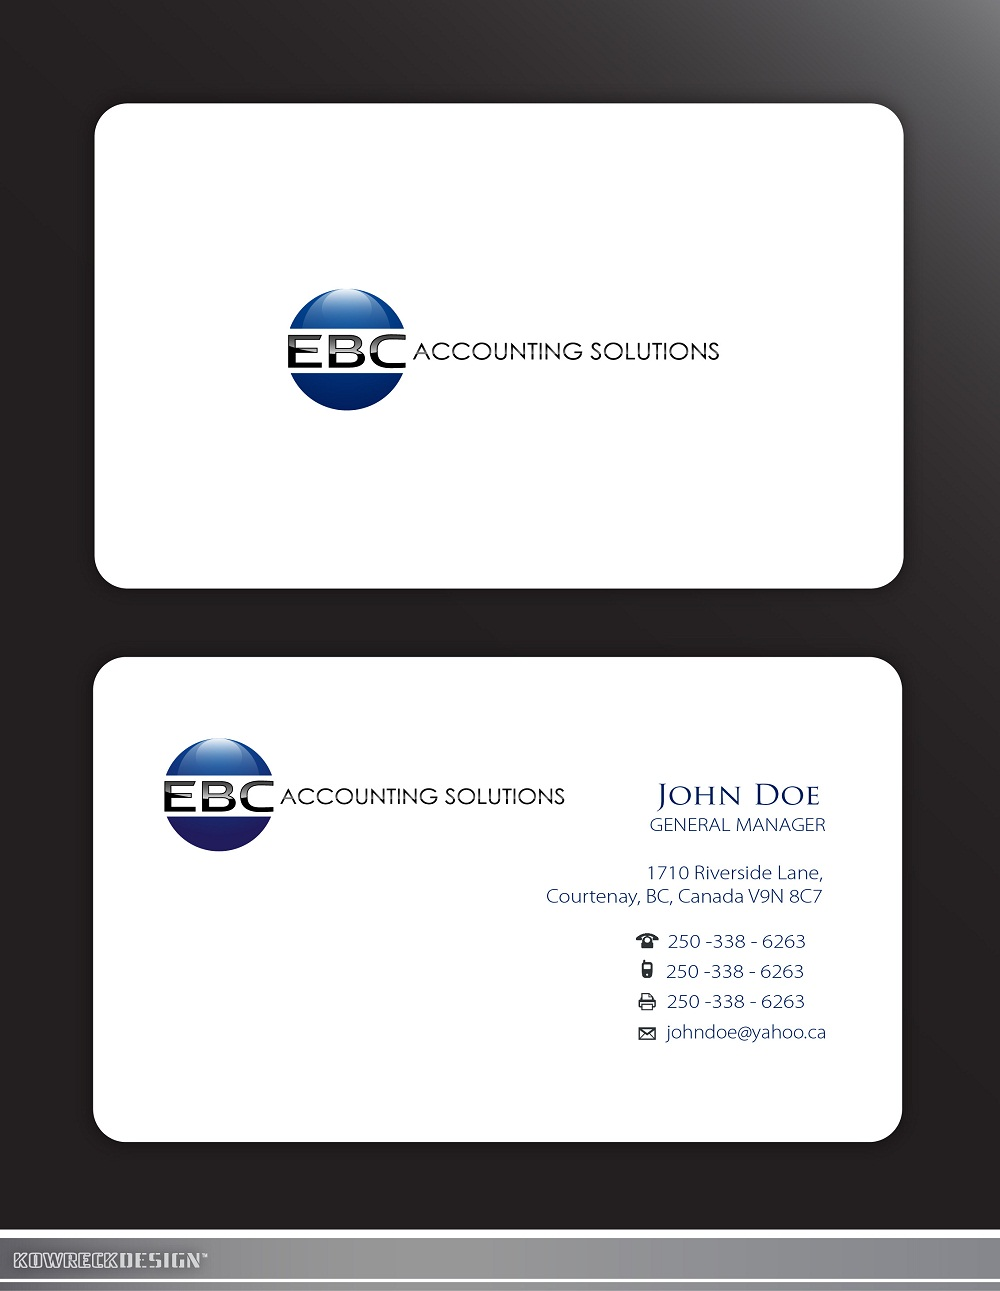 Logo Design by kowreck - Entry No. 200 in the Logo Design Contest New Logo Design for EBC Accounting Solutions.